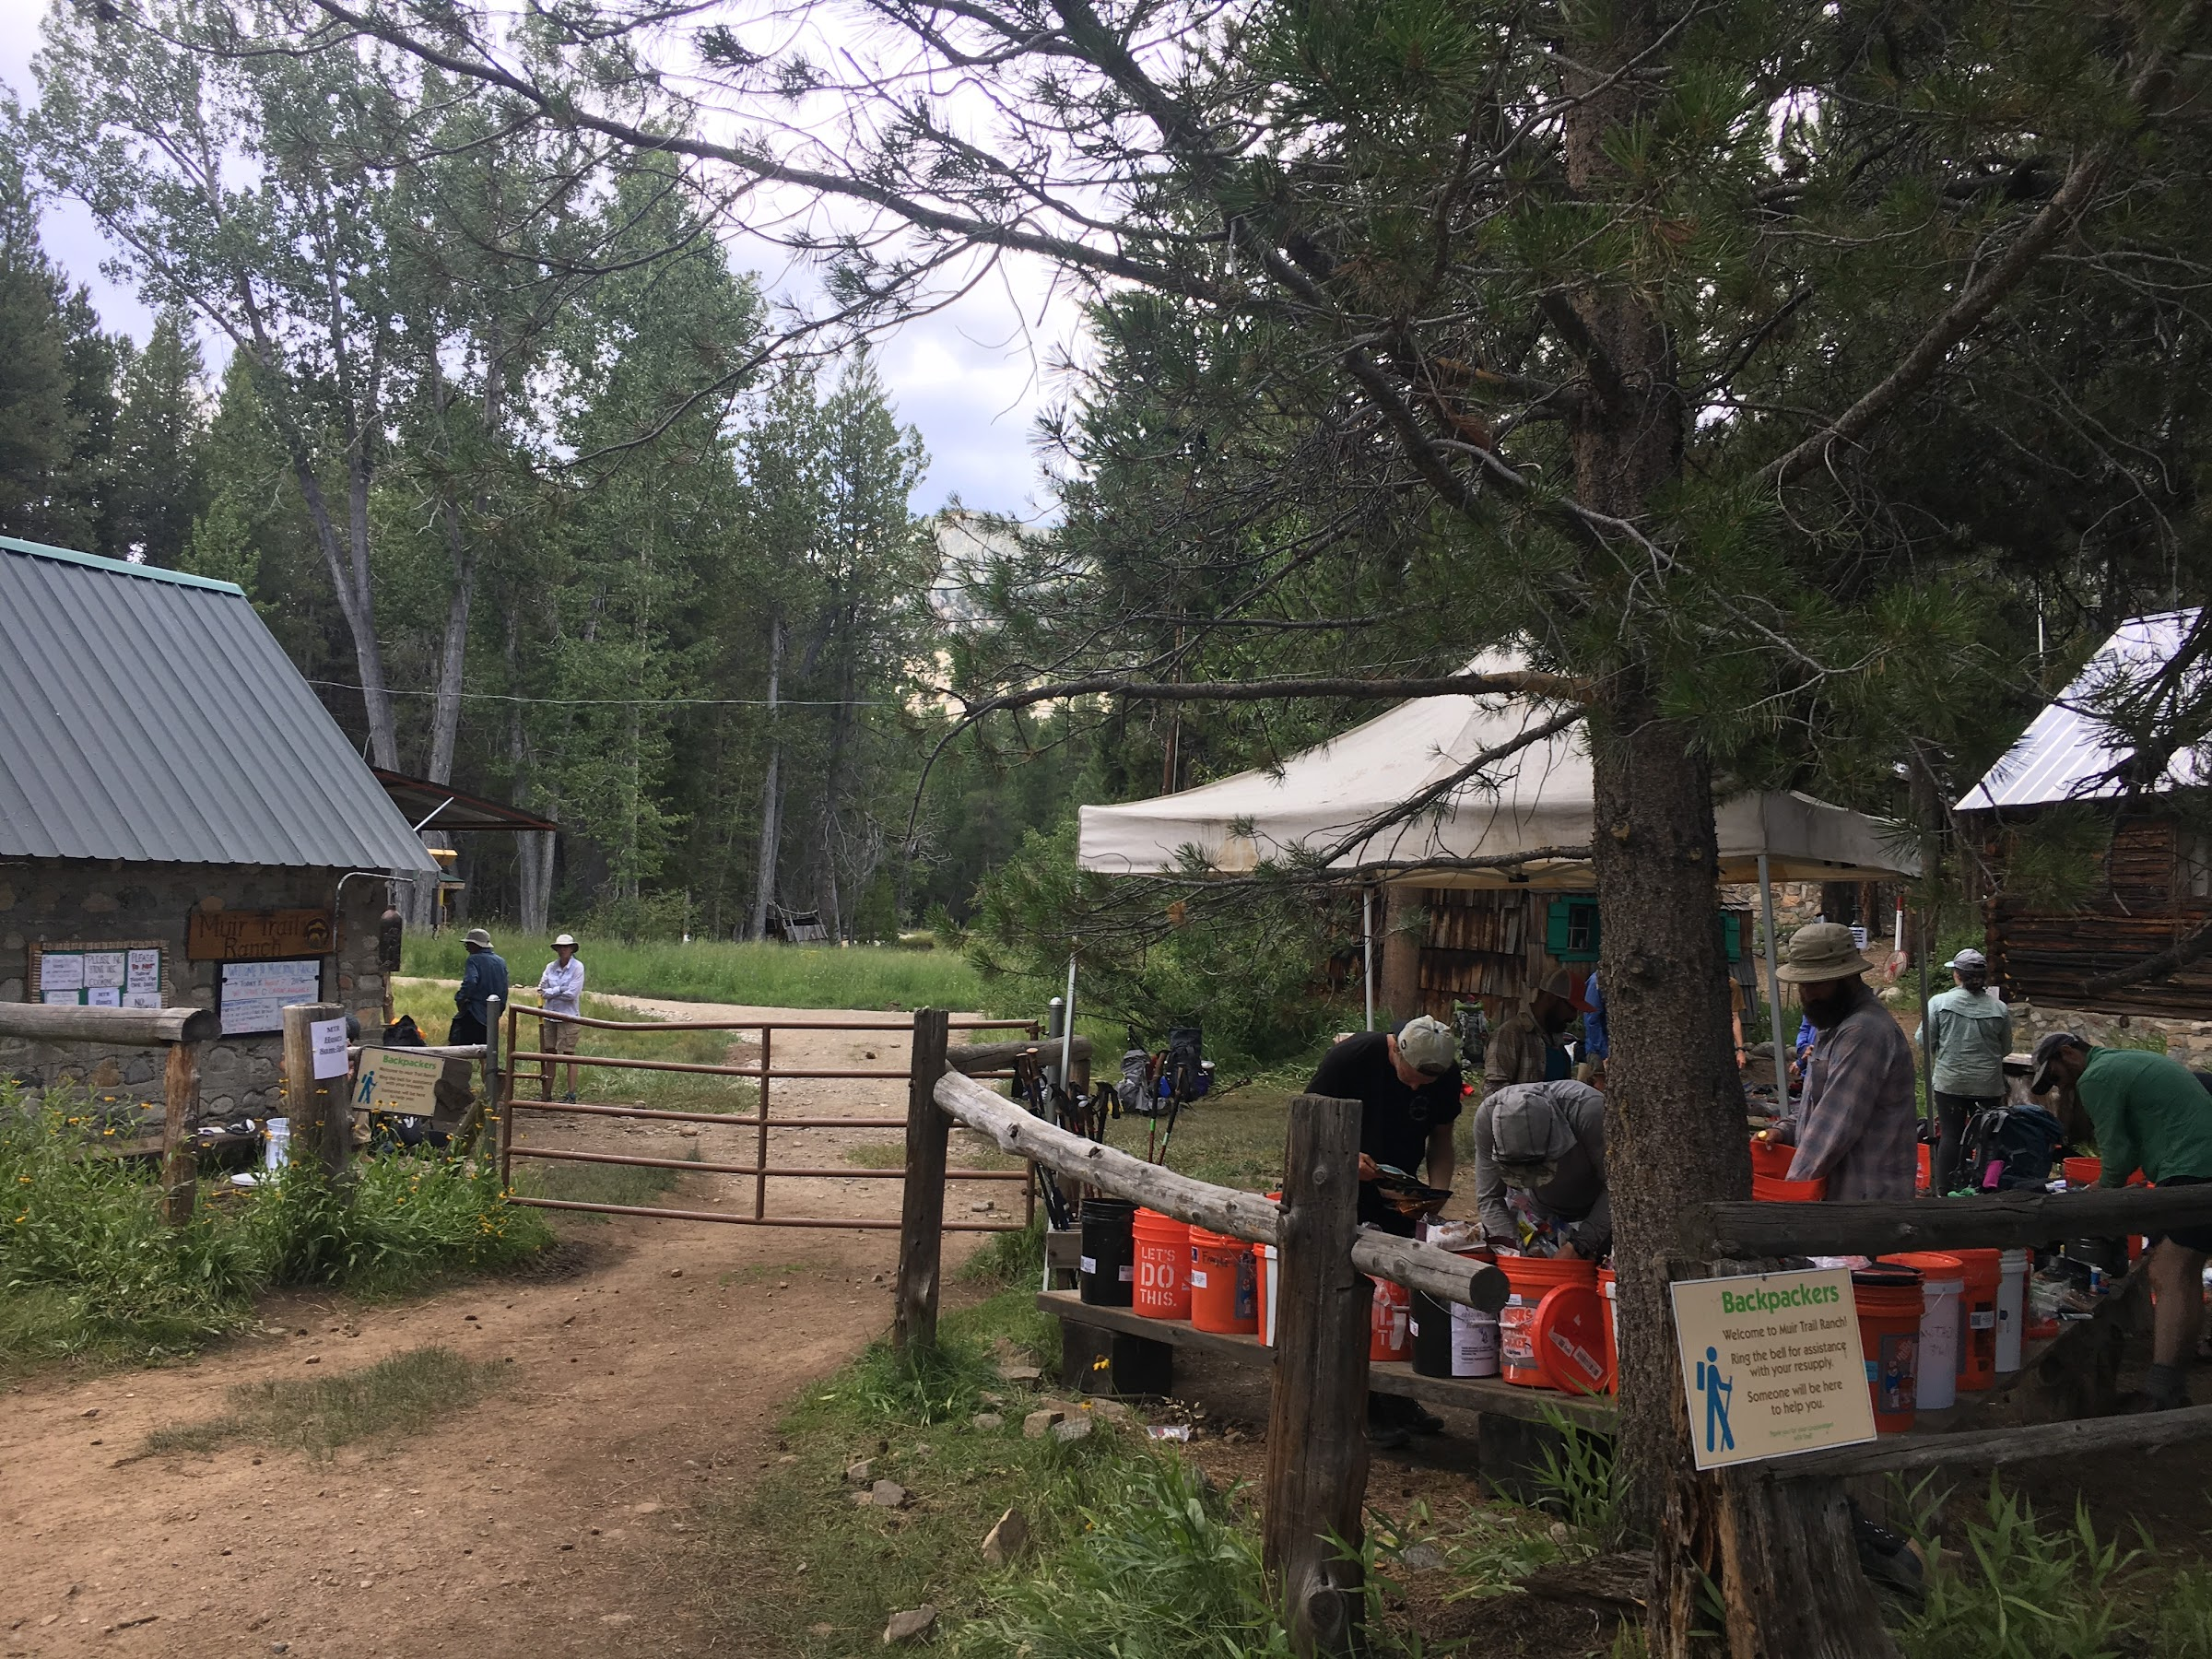 Hunger hikers scavenging from the public buckets at Muir Trail Ranch